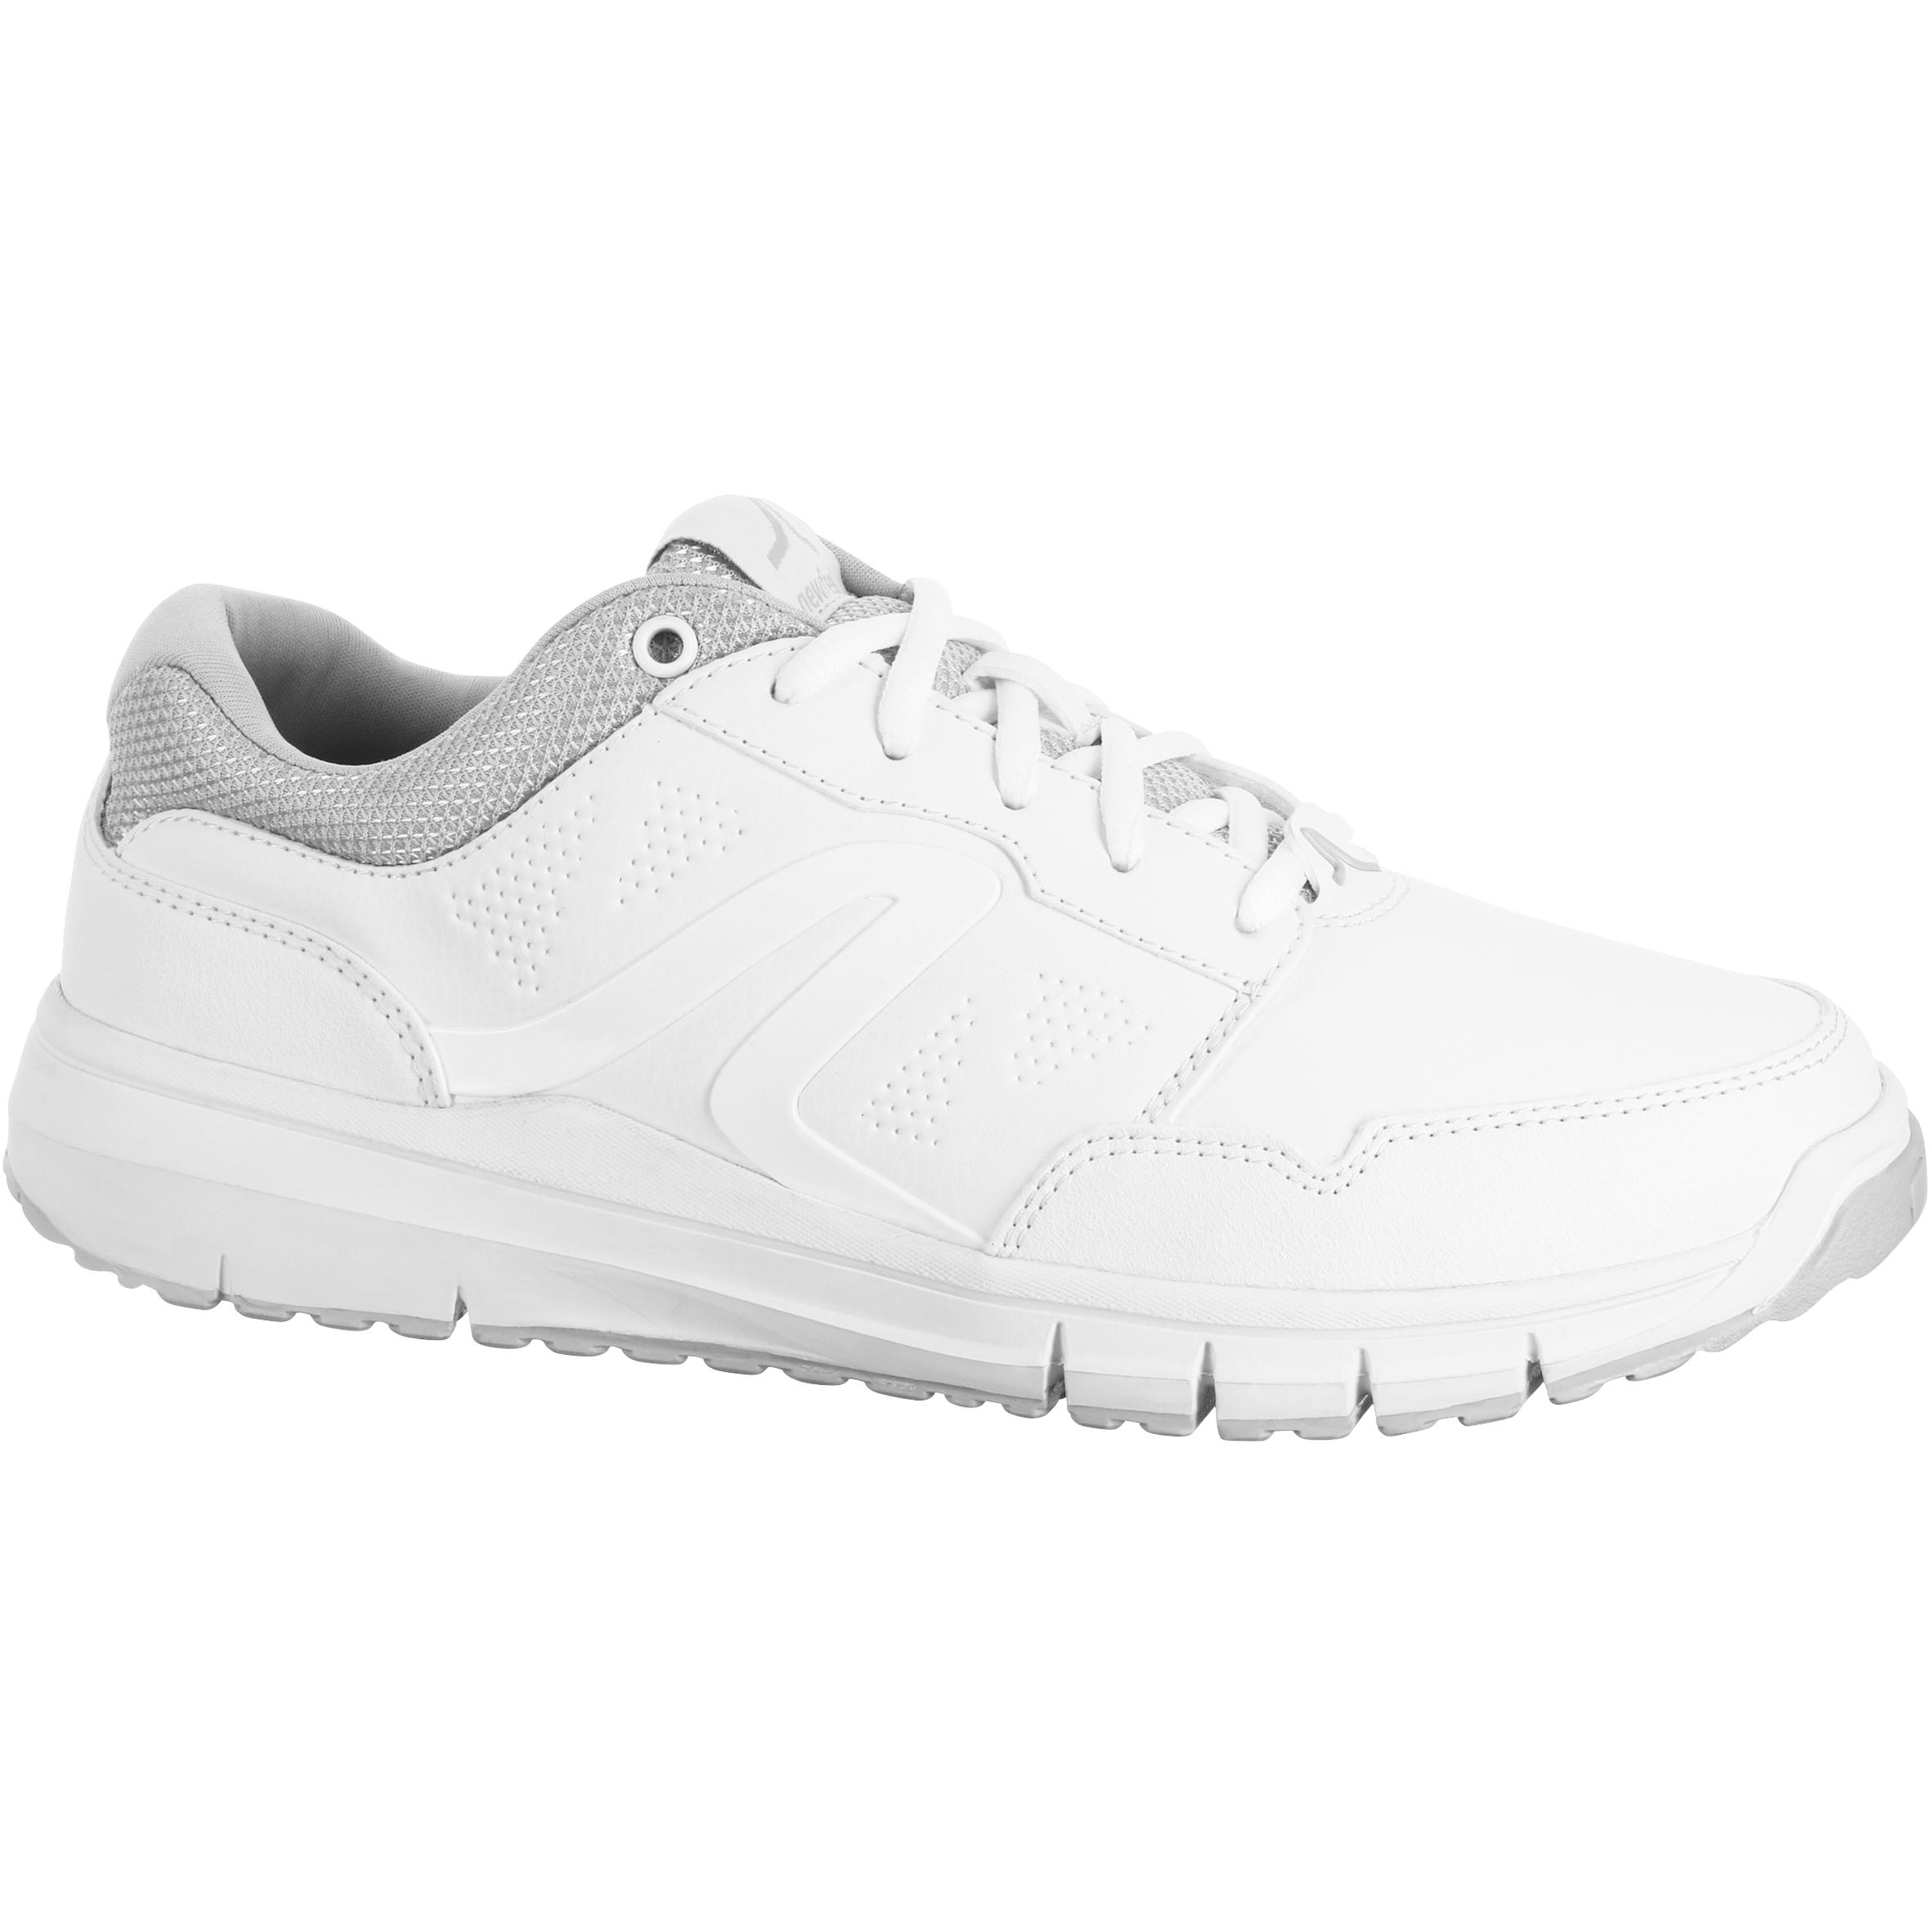 Chaussures marche sportive femme Protect 140 blanc